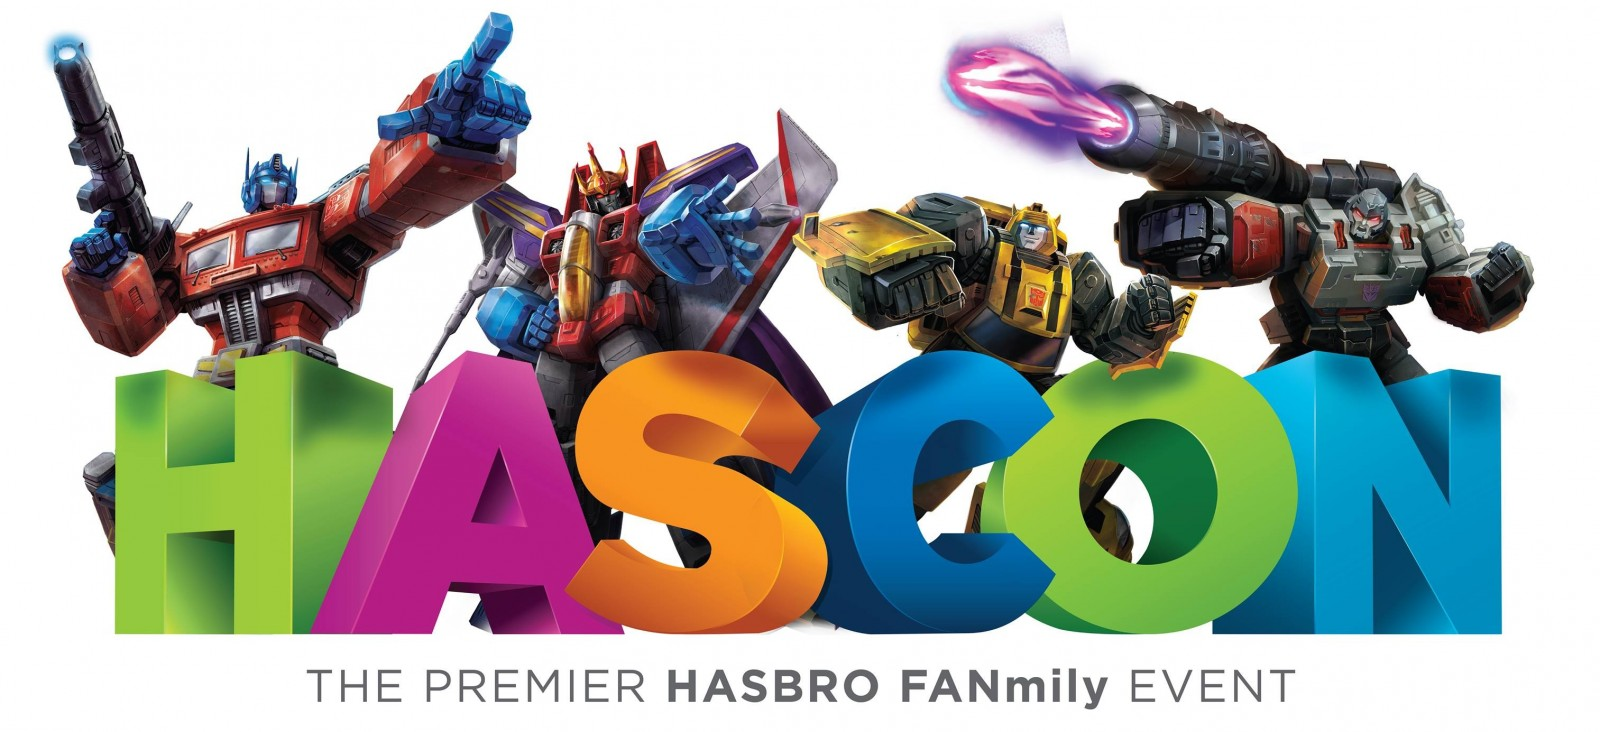 Transformers News: Hasbro Released Full HASCON 2017 Schedule - Transformers Comics, Toys, Guests and More